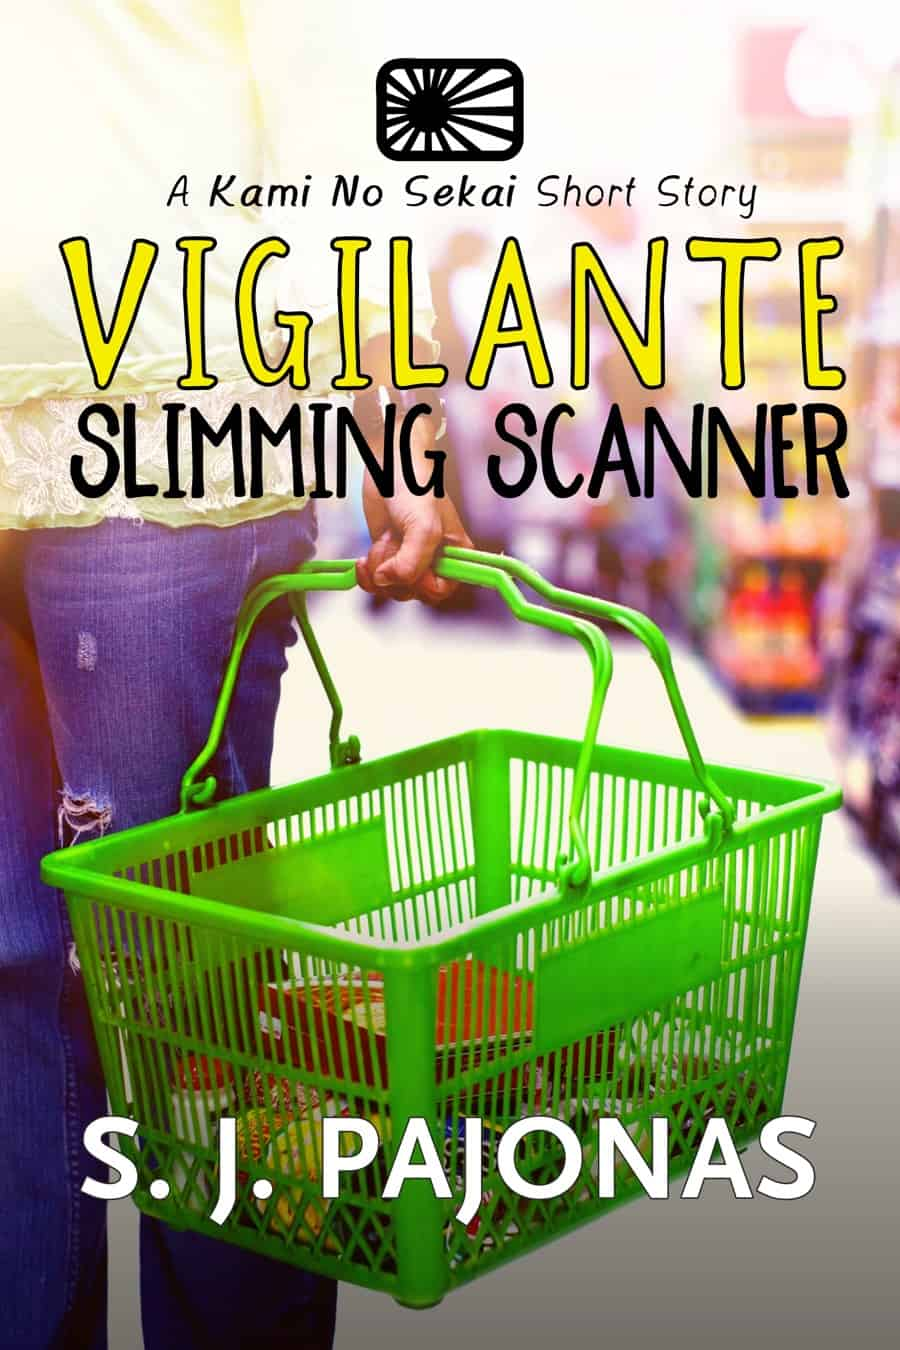 VIGILANTE SLIMMING SCANNER is now available for only 99¢! The grocery store registers have a mission to save Toro from his bad eating habits, and he's determined to stay the course. Will they inspire him to change or will he convince them to give him a second chance?